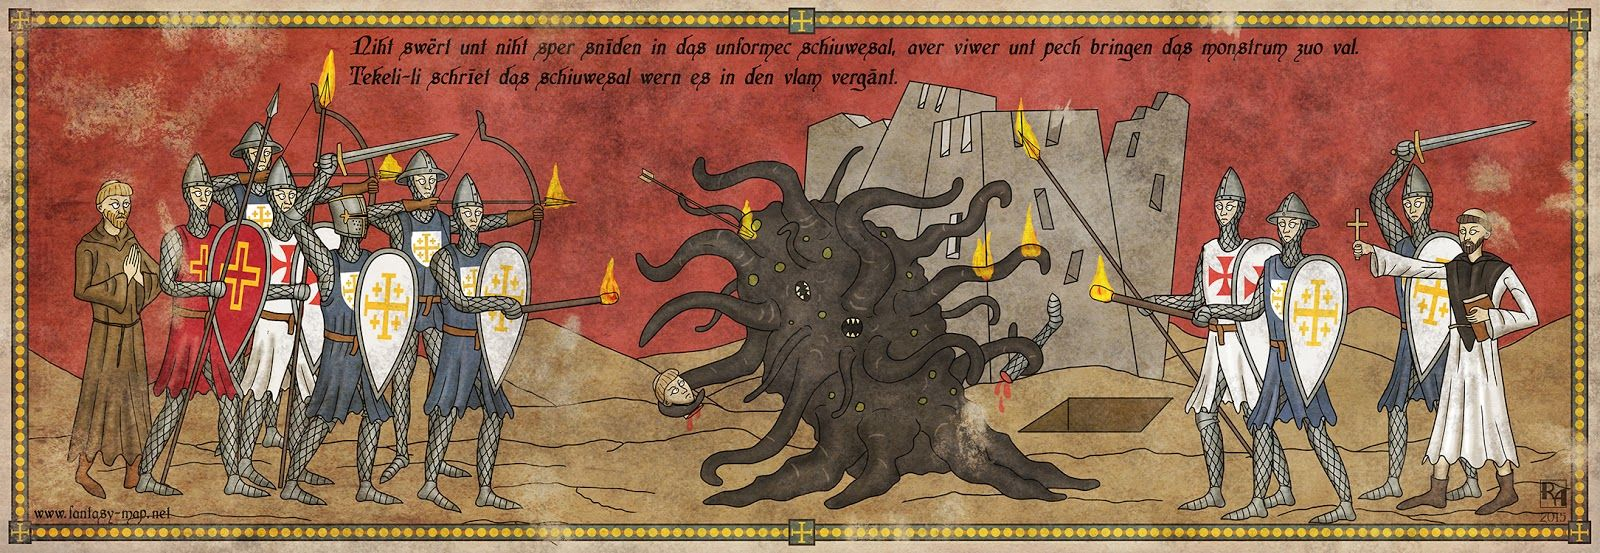 Robert+Altbauer+Medieval+Shoggoth+Illustration.jpg (1600×553)